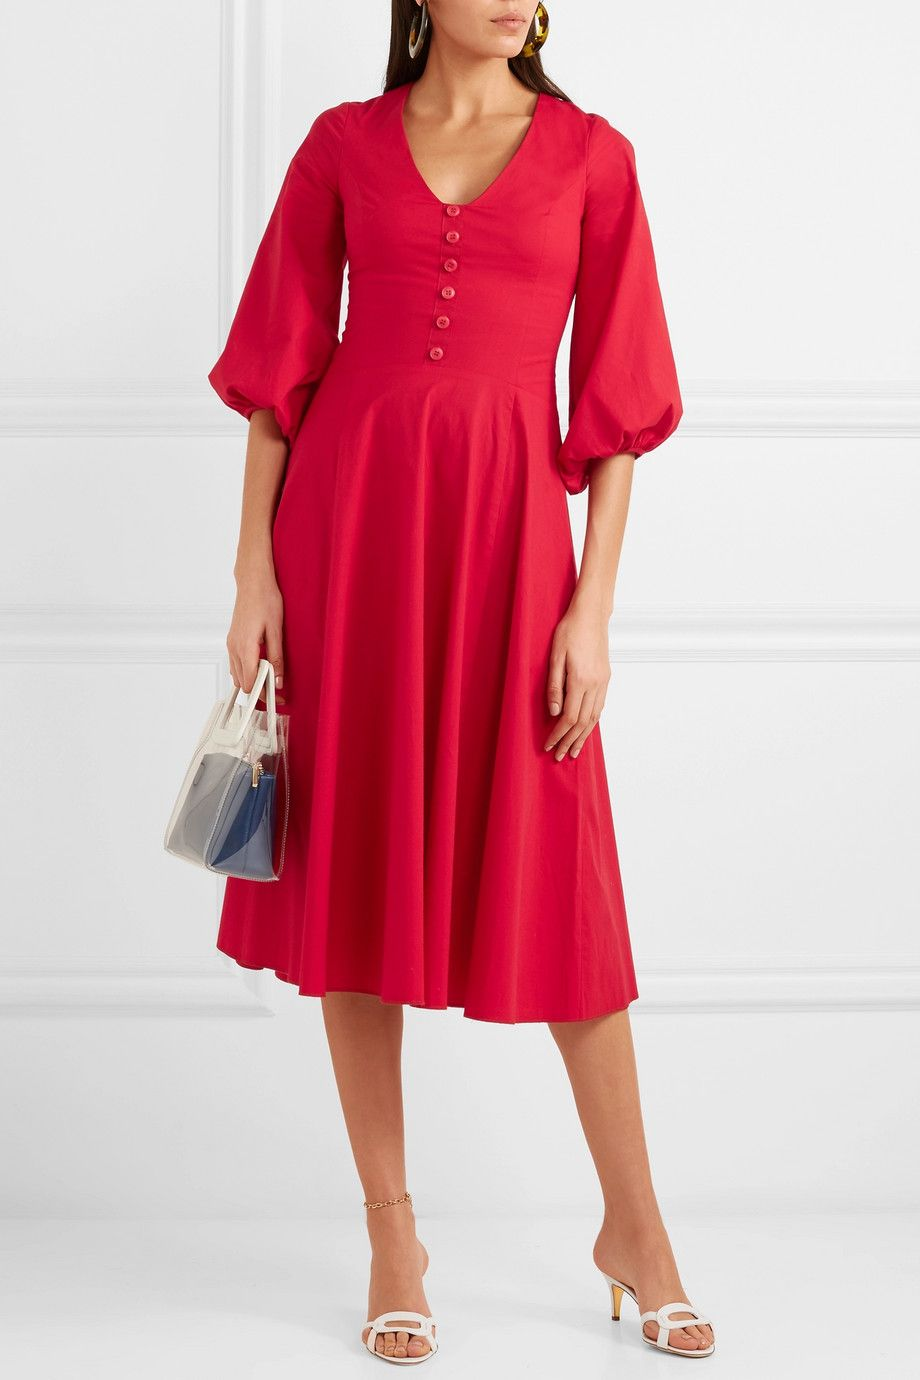 Veronica Stretch Cotton-poplin Dress - Red Staud Cheap Sale Inexpensive Low Price For Sale Best Prices Cheap Price HFW7bo